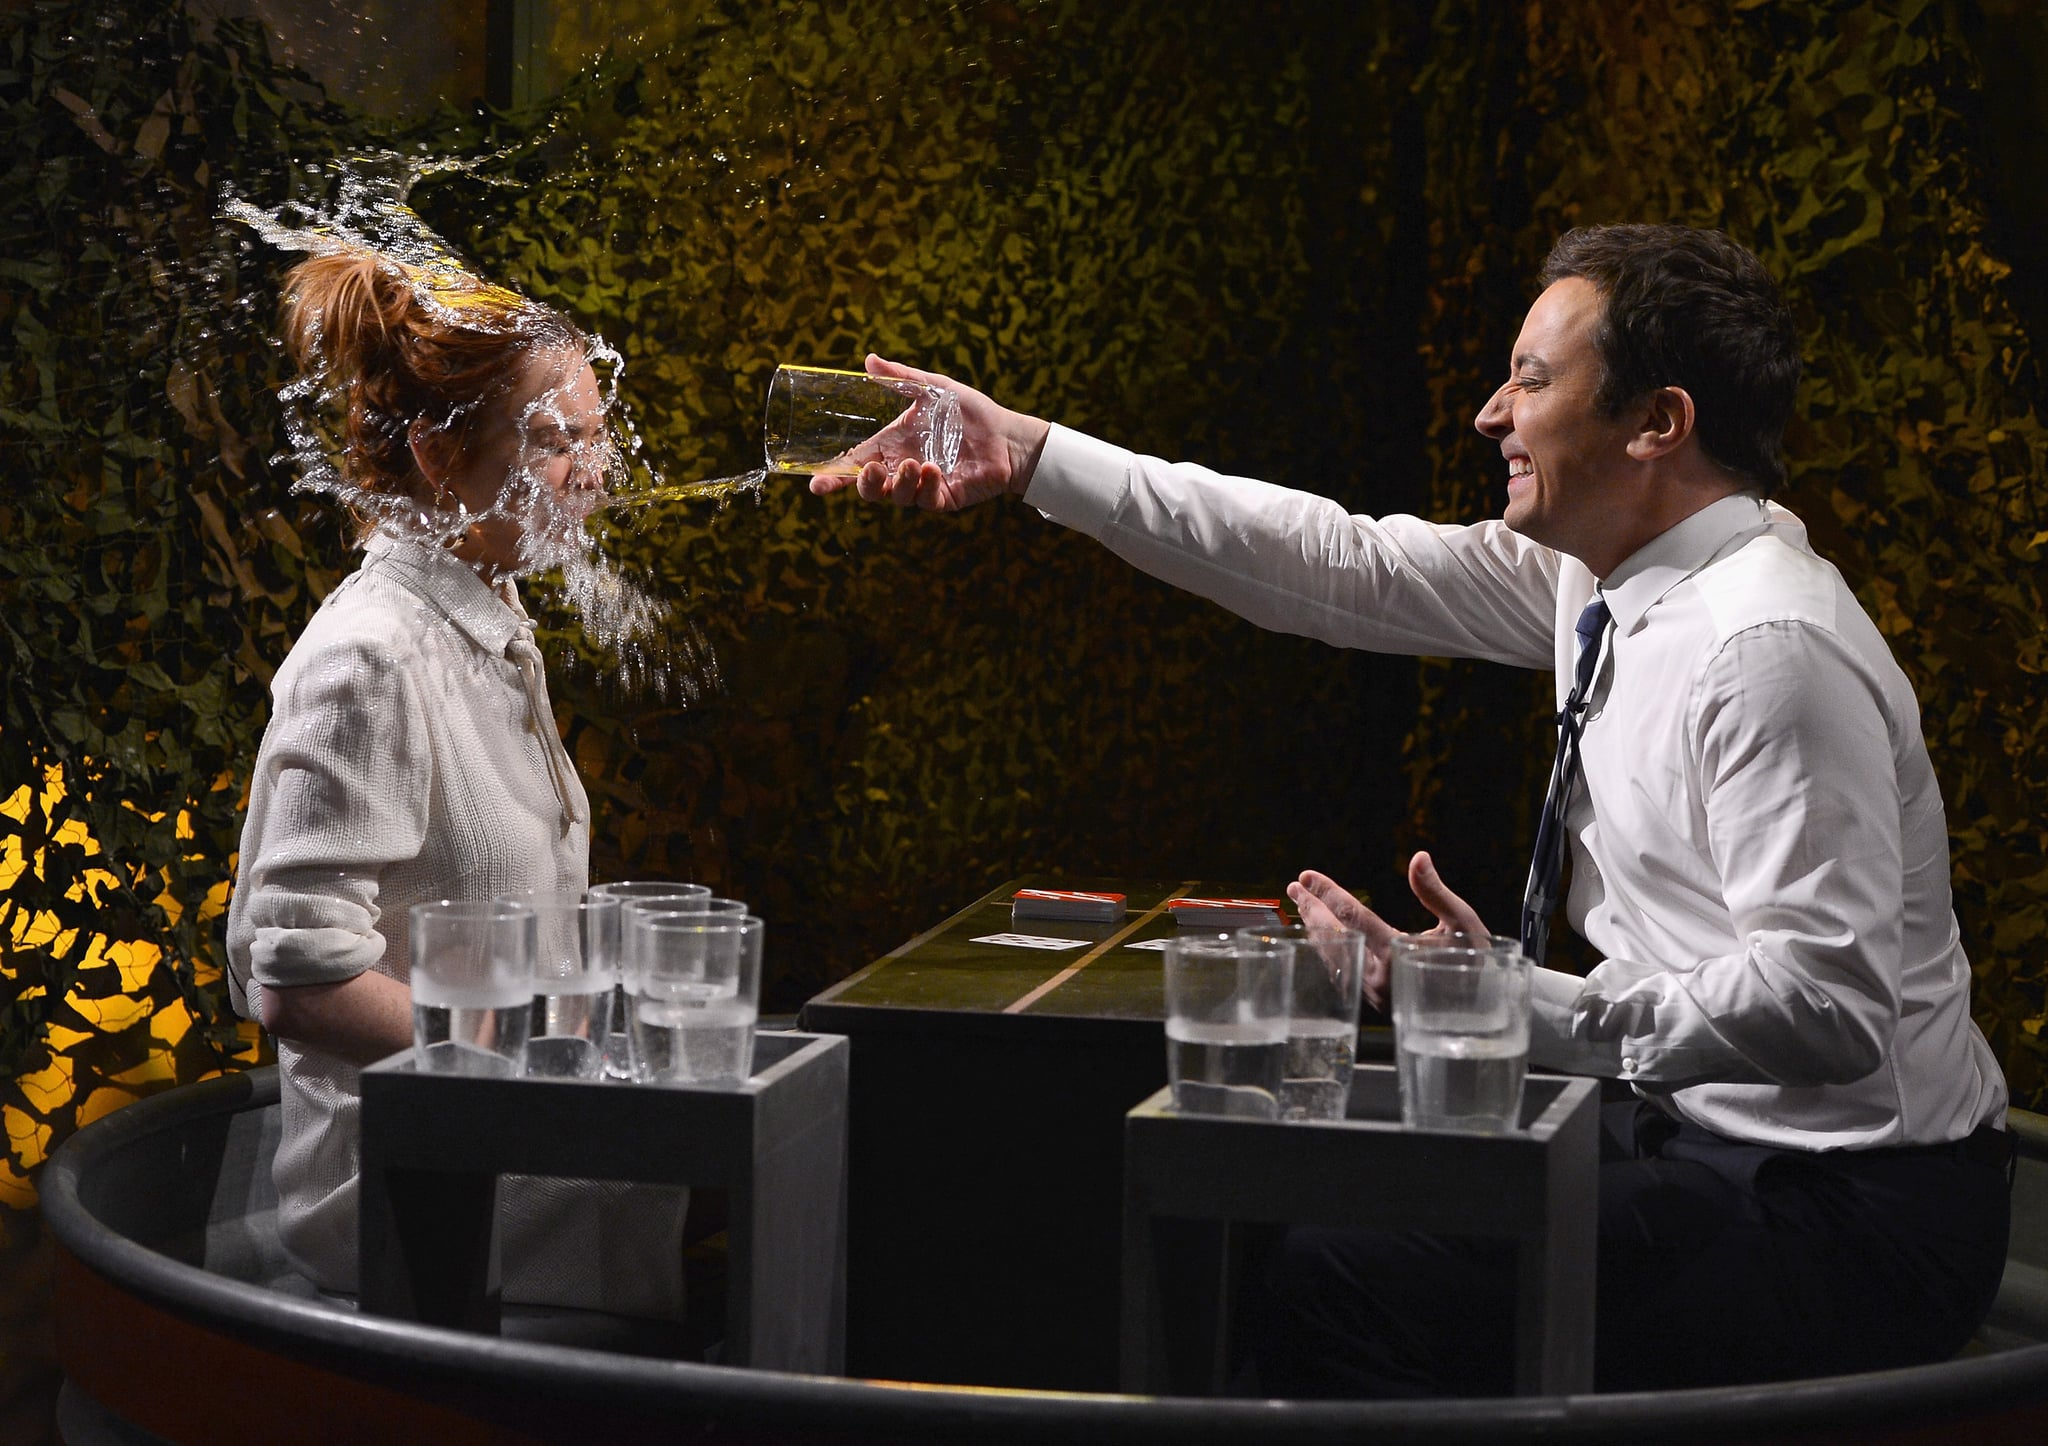 Lindsay Lohan appeared on The Tonight Show Starring Jimmy Fallon for a little game of water war.